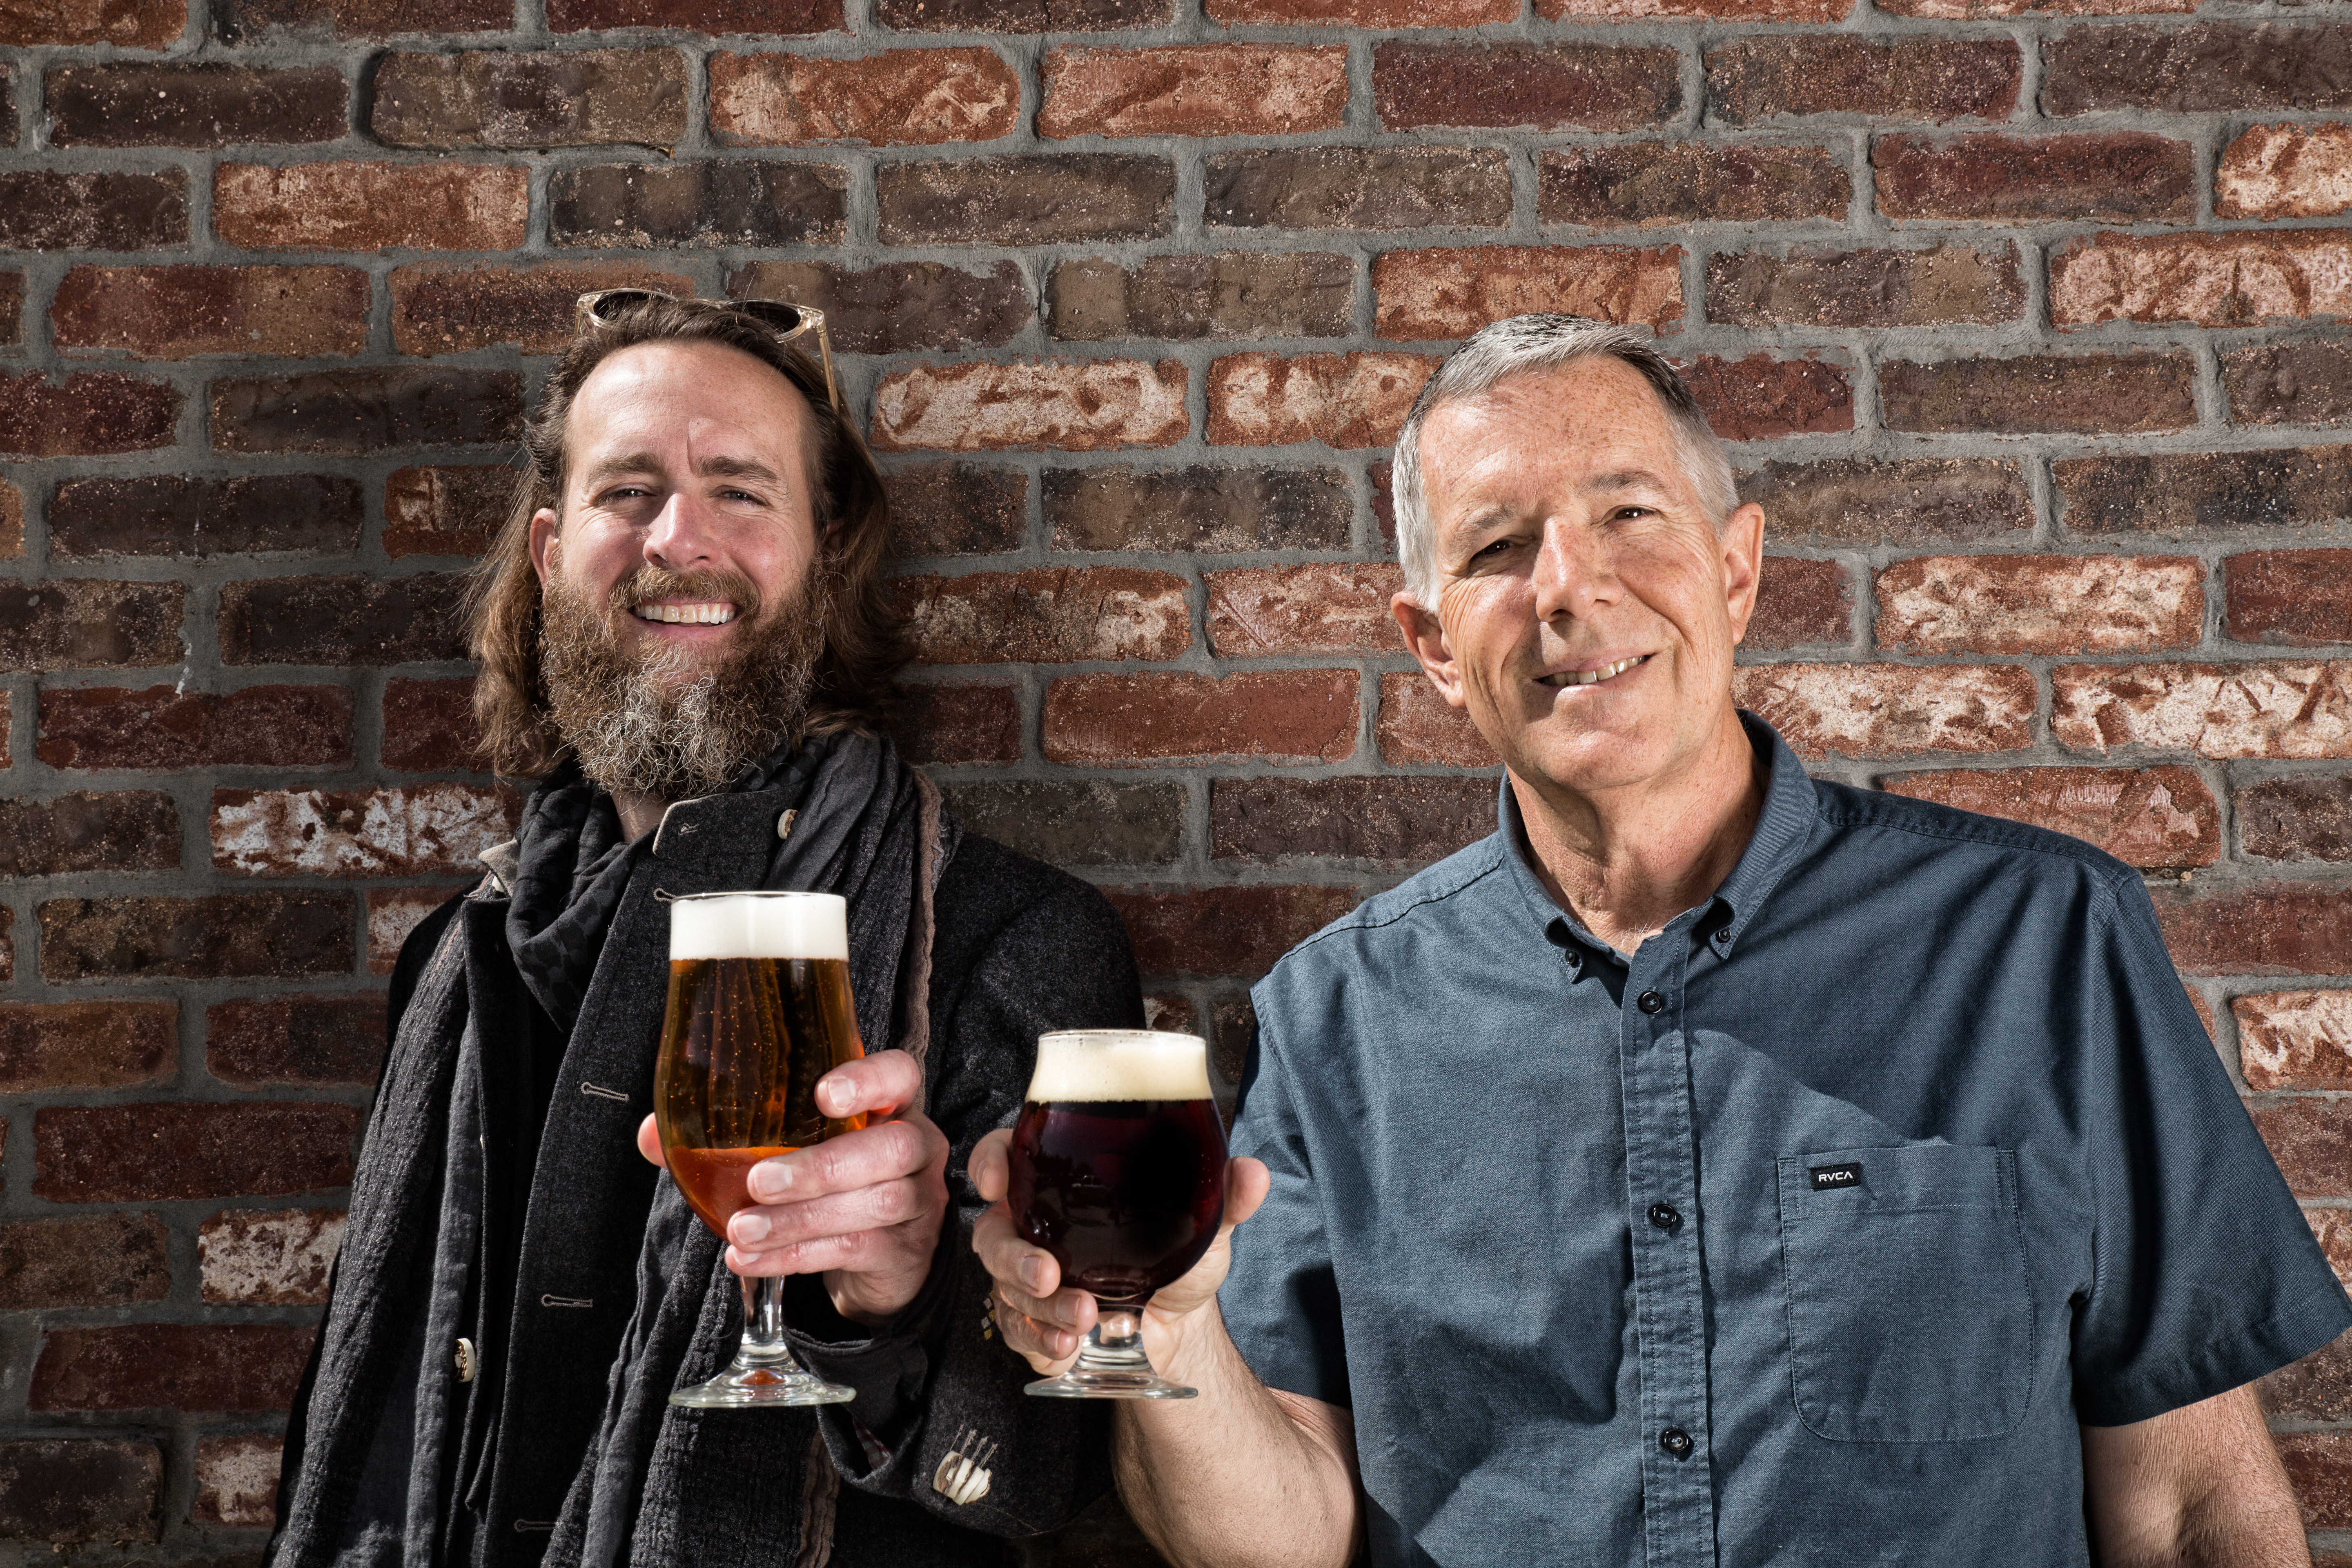 Stone Brewing co-founders, Greg Kock and Steve Wagner. (image courtesy of Stone Brewing)